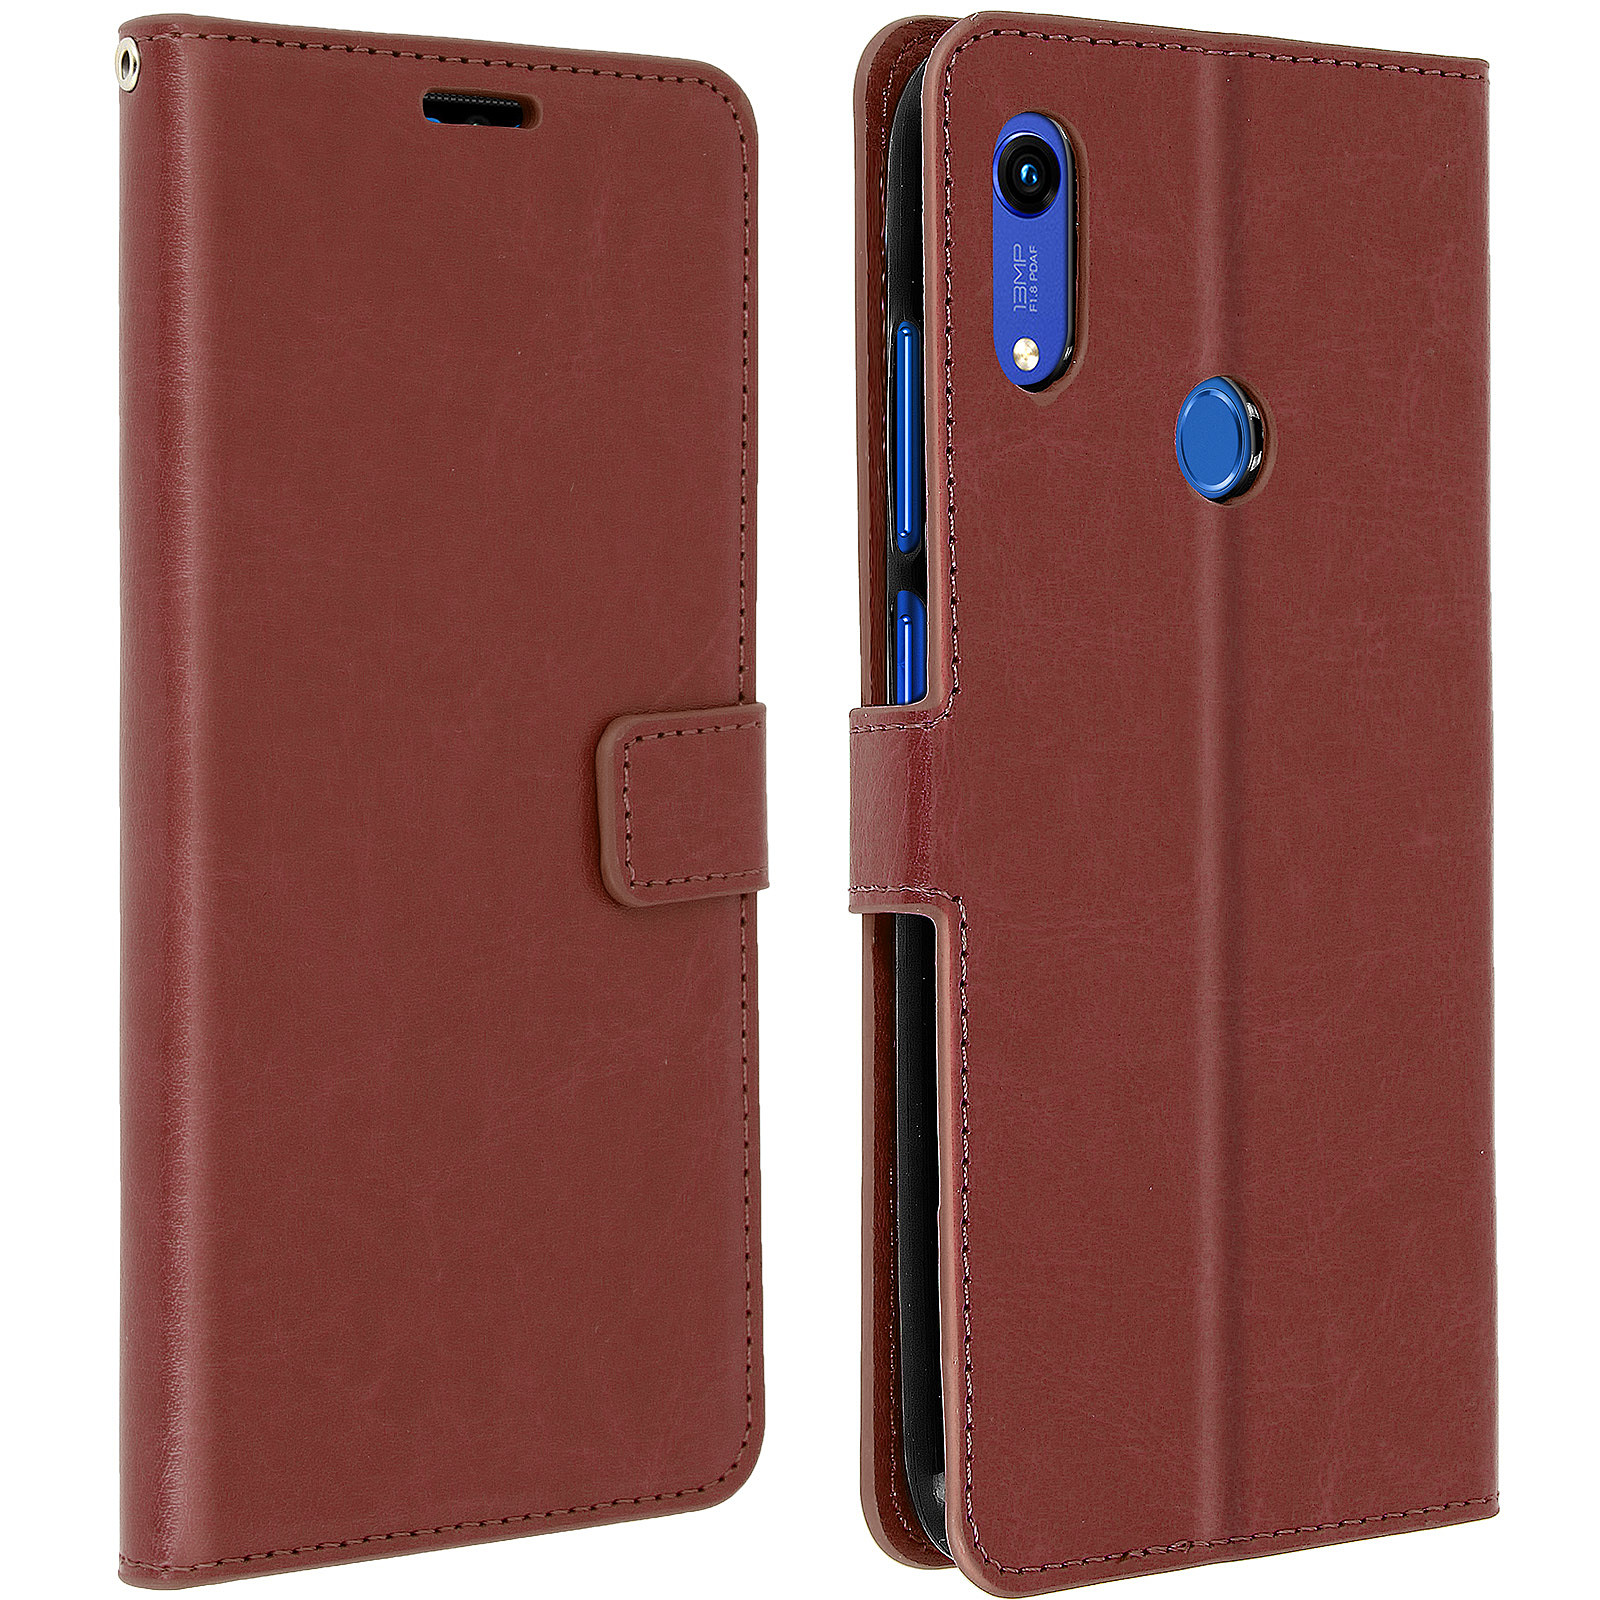 Avizar Etui folio Marron pour Huawei Y6 2019,Honor 8A